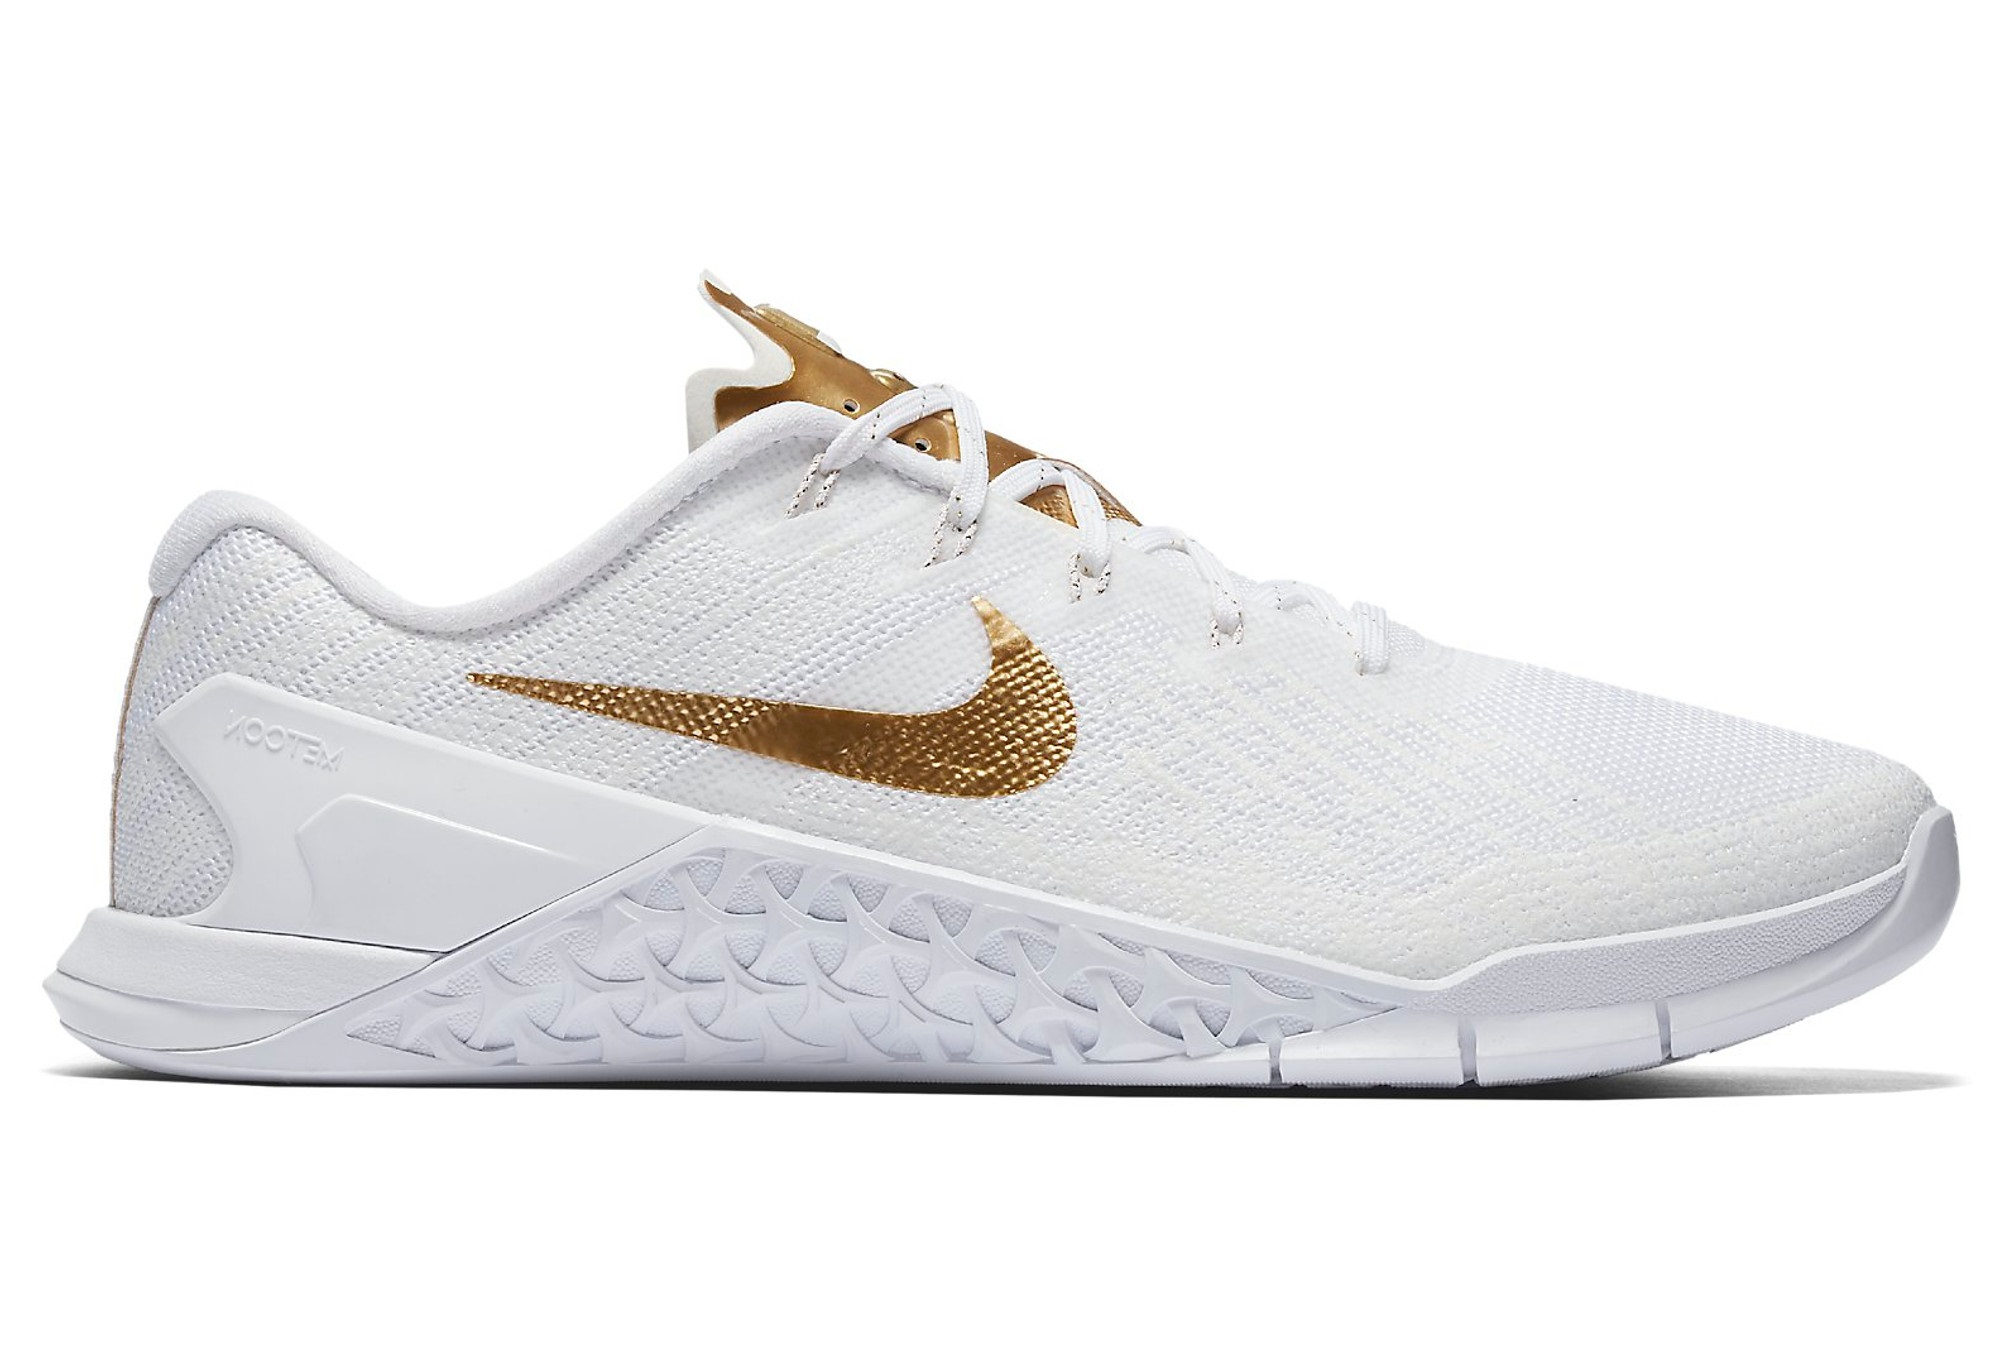 new styles 25a91 71faa Chaussures de Cross Training Femme Nike Metcon 3 AMP Blanc  Or